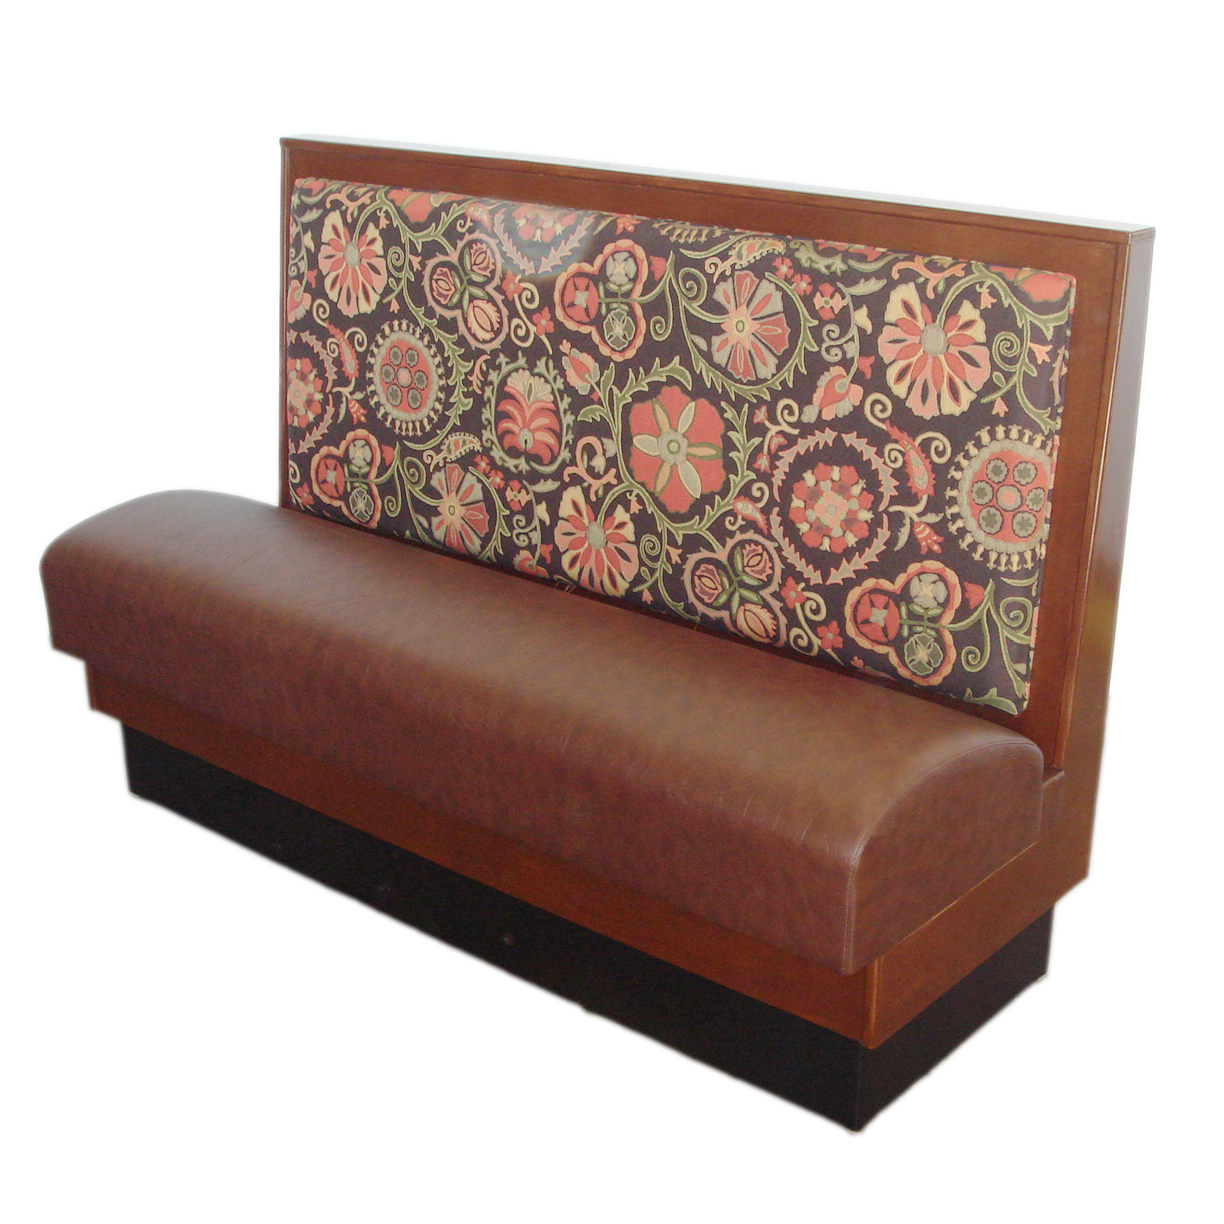 AAA Furniture Wholesale NO42D GR6 booth